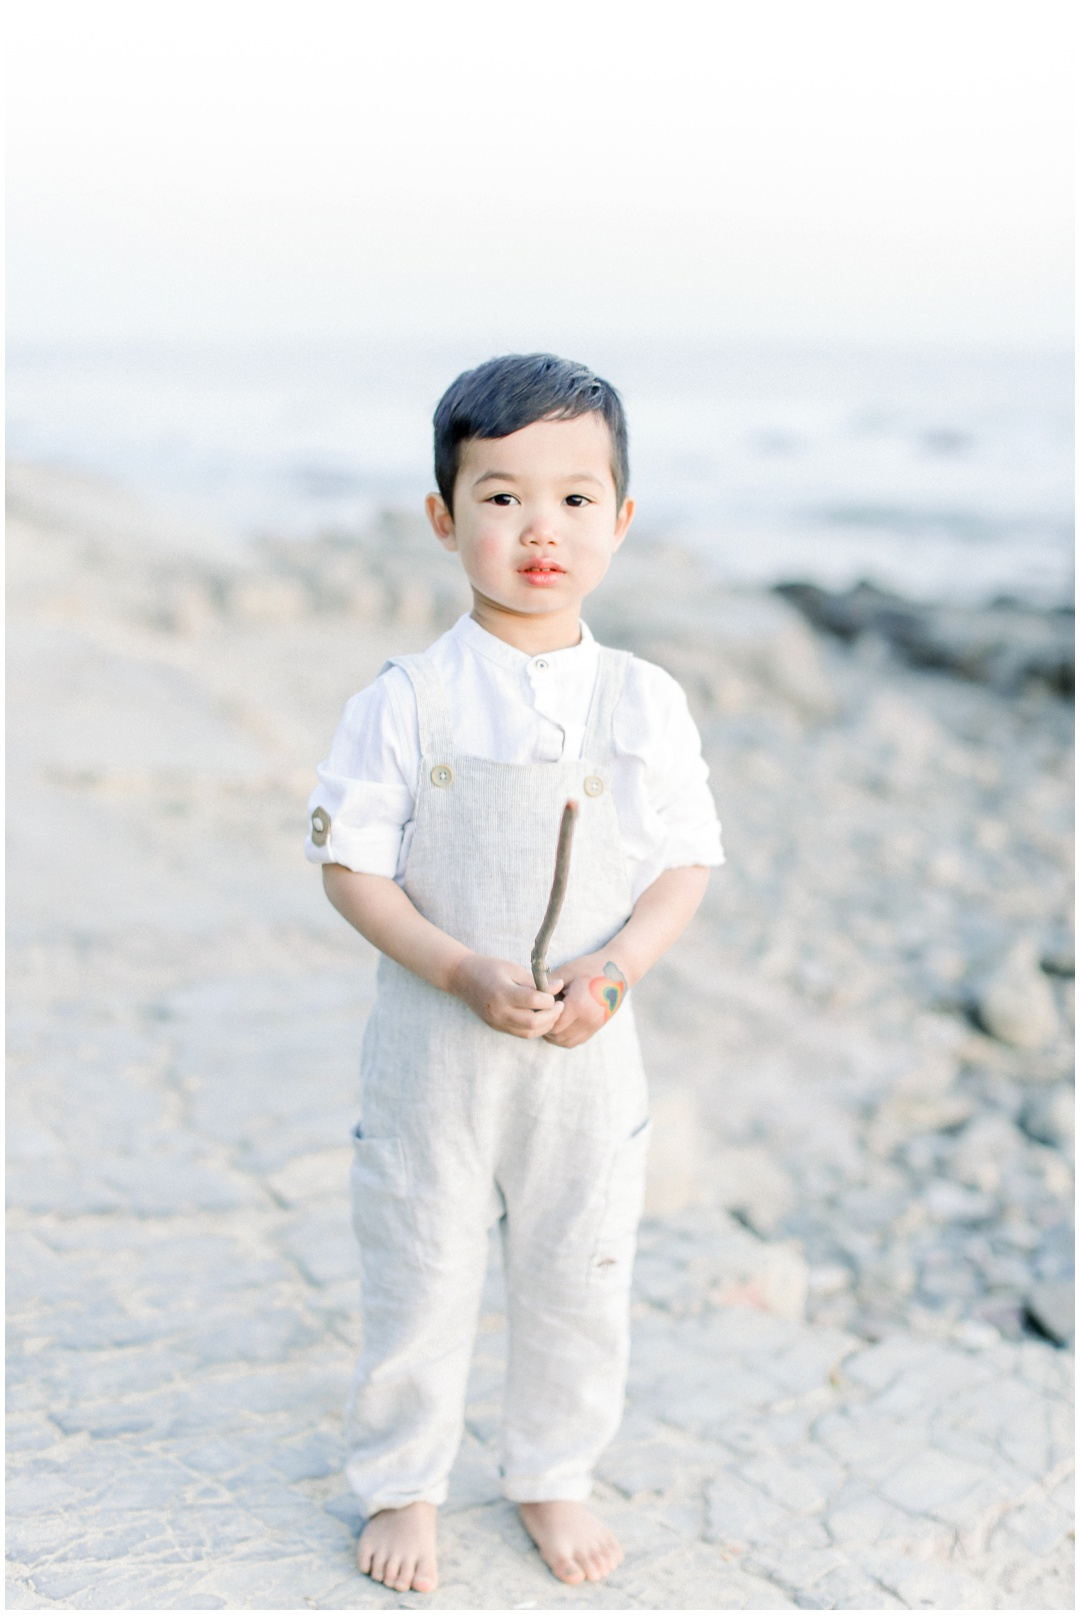 Newport_Beach_Newborn_Light_Airy_Natural_Photographer_Newport_Beach_Photographer_Orange_County_Family_Photographer_Cori_Kleckner_Photography_Huntington_Beach_Photographer_Family_OC_Newborn_Christine_Cho_Family_session__3397.jpg